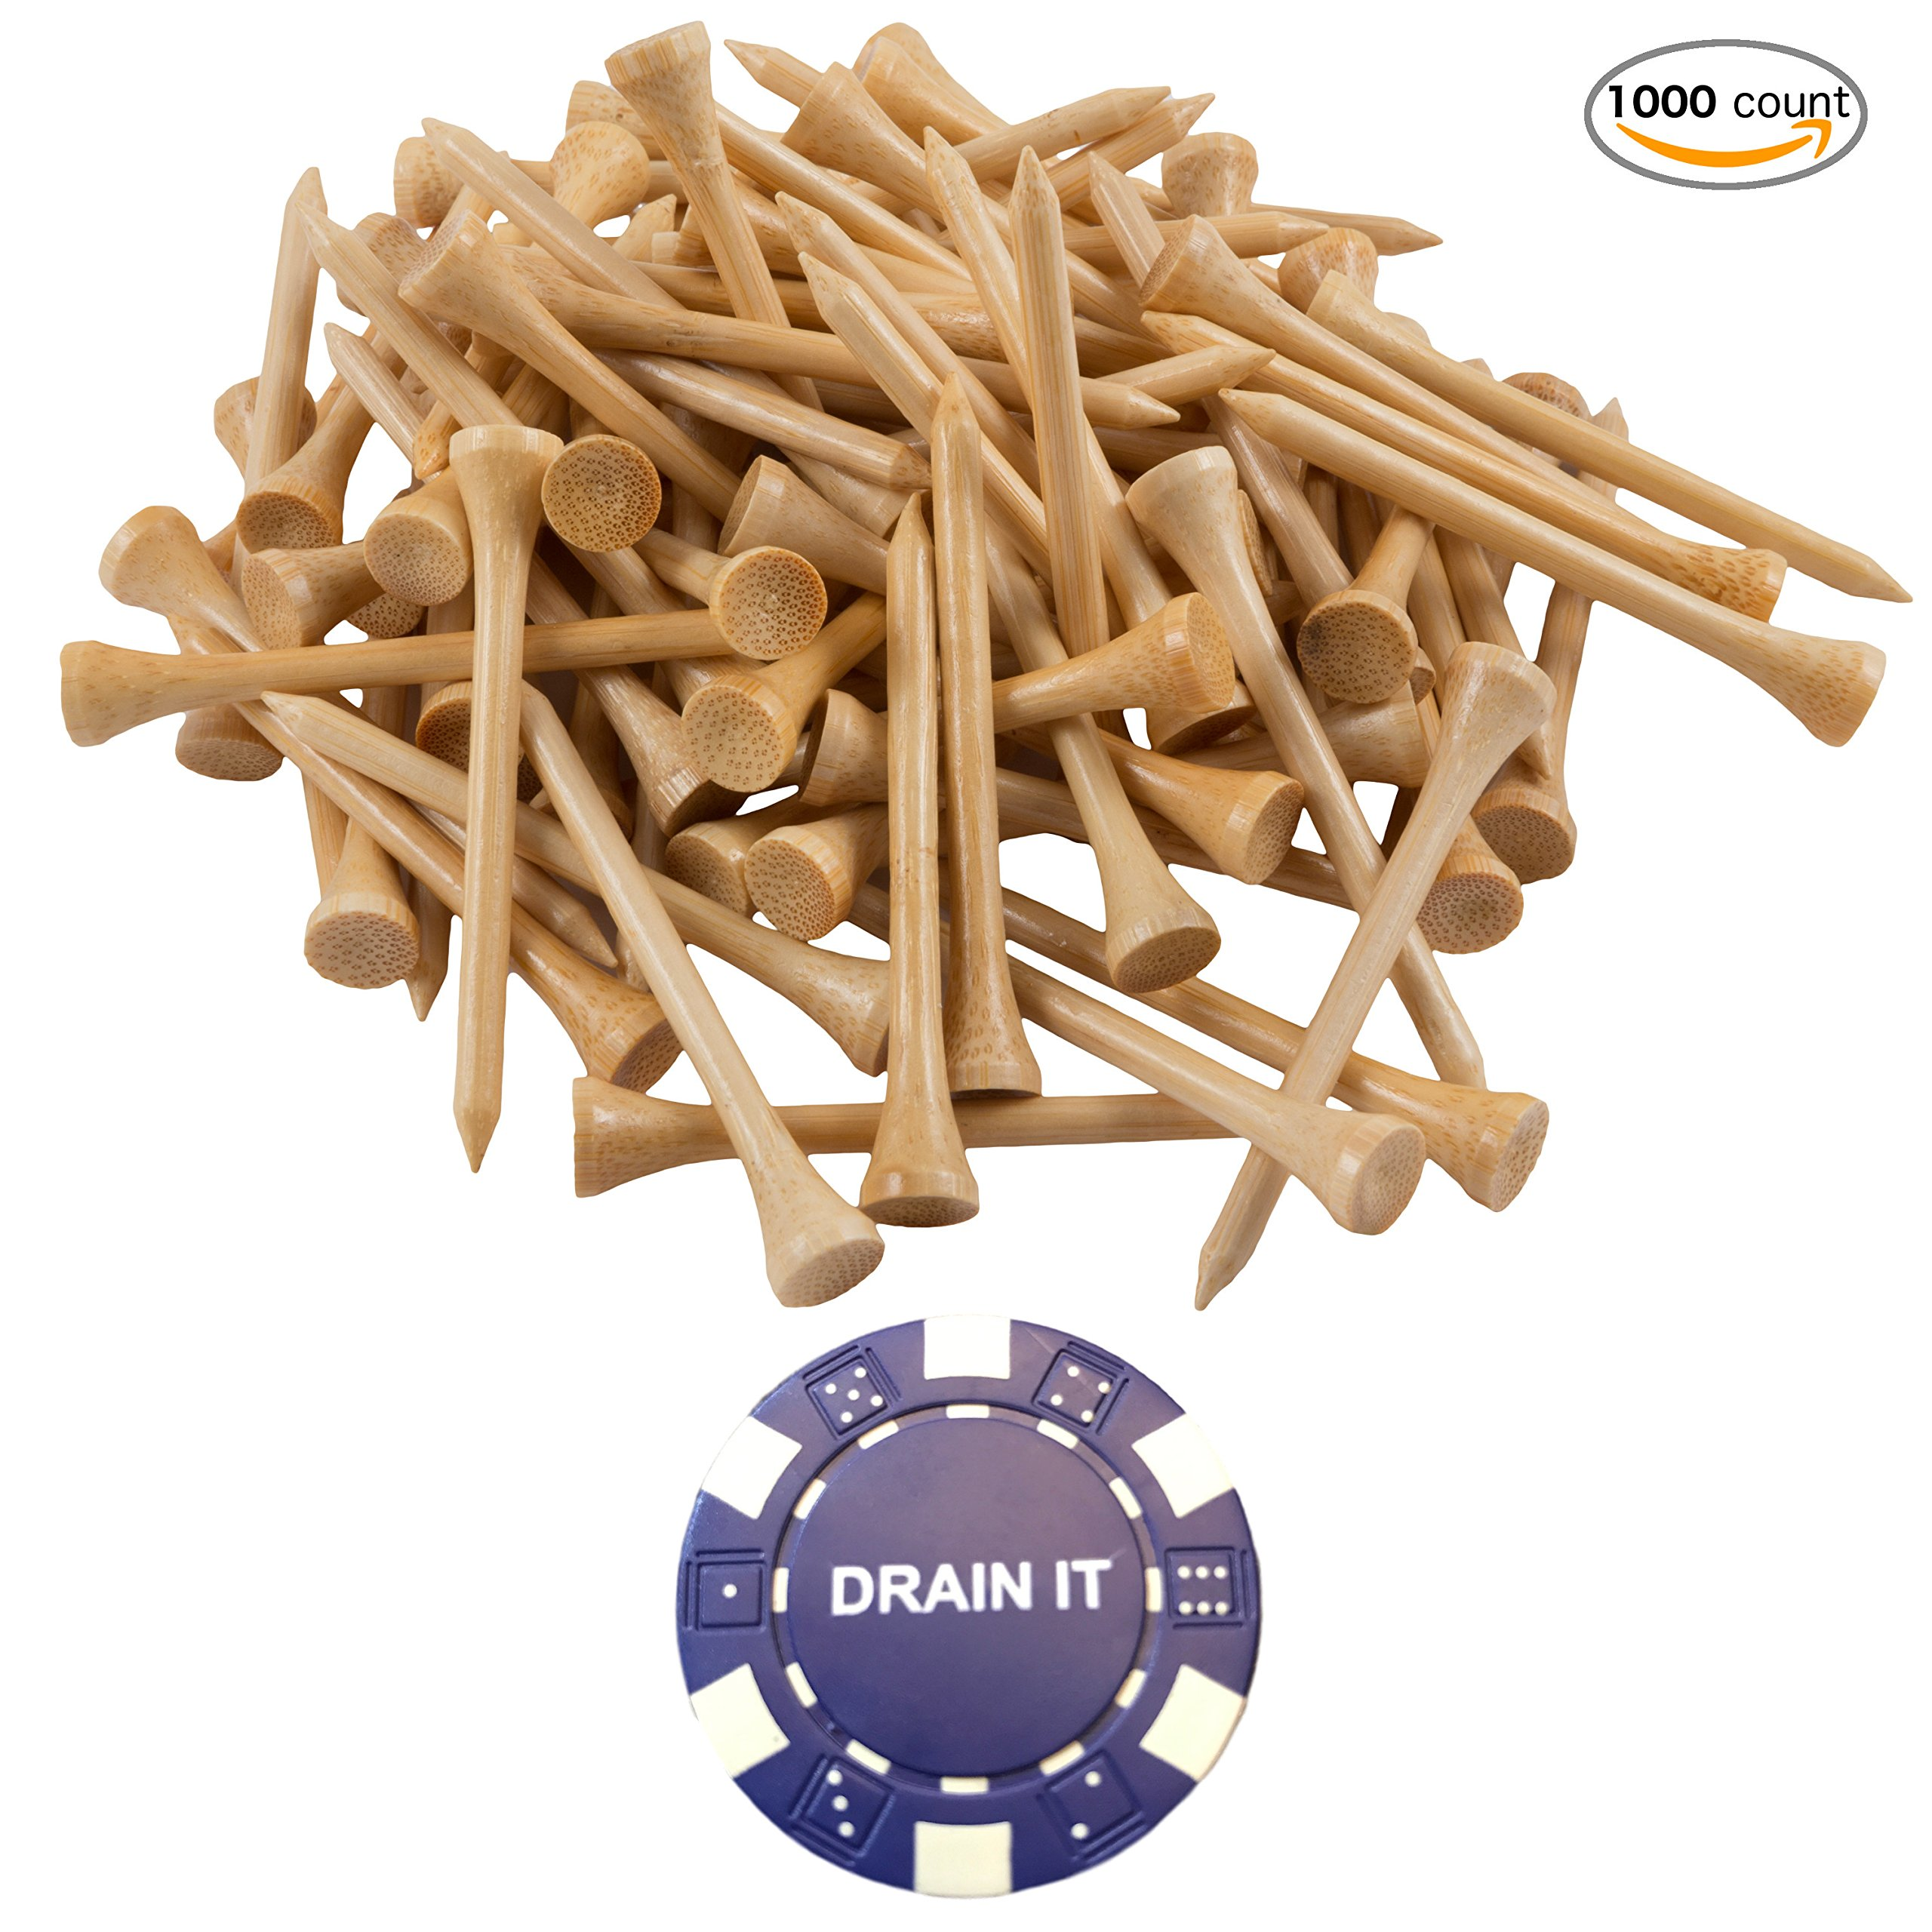 1000 Count Professional Bamboo Golf Tees 2-3/4 inch - Free Poker Chip Ball Marker - Stronger Than Wood Tees Biodegradable & Less Friction PGA Approved